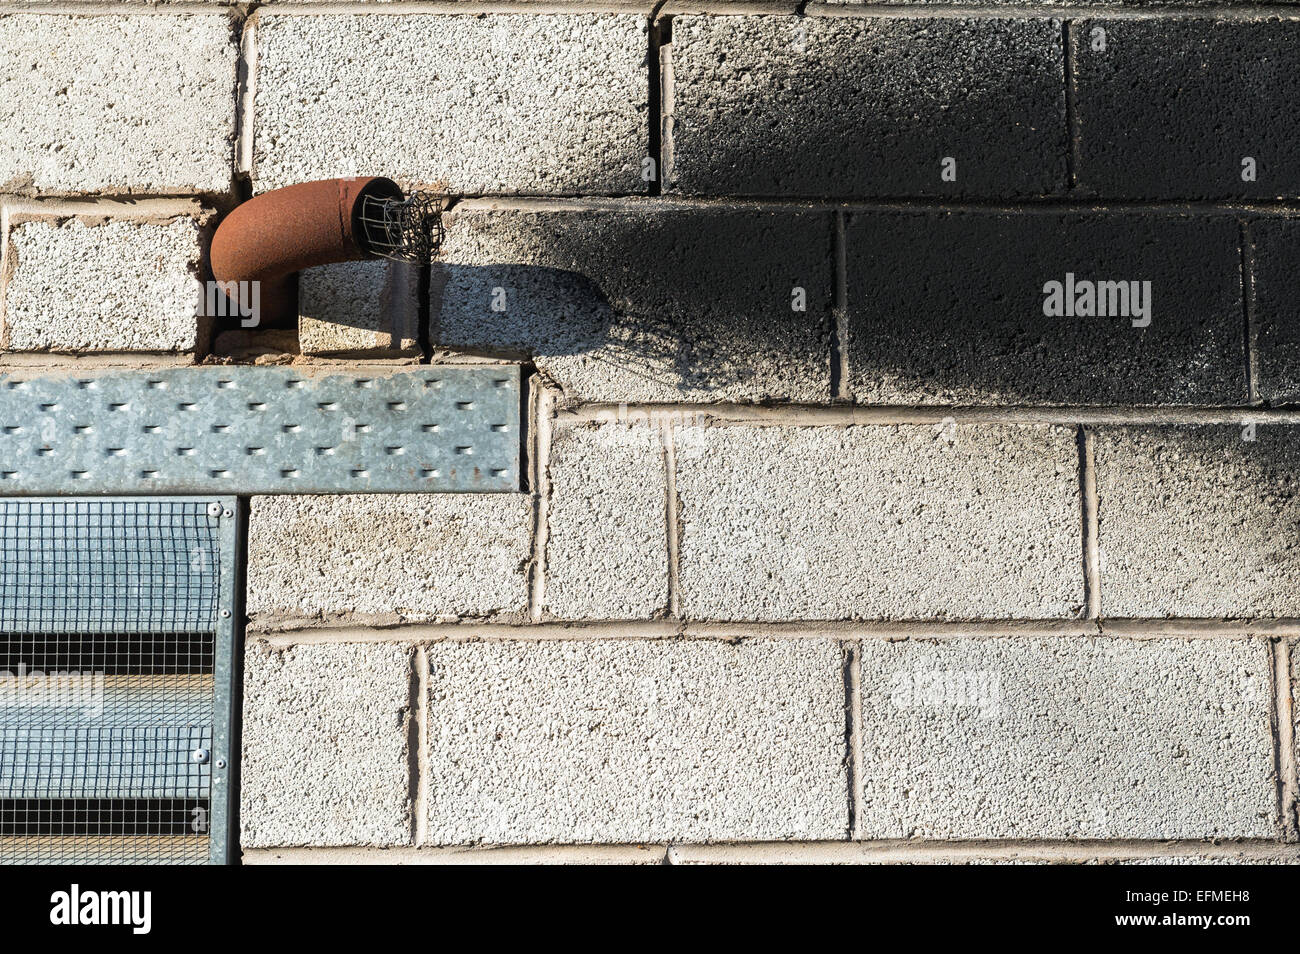 Metal exhaust pipe coming from a block built building with soot stains. - Stock Image